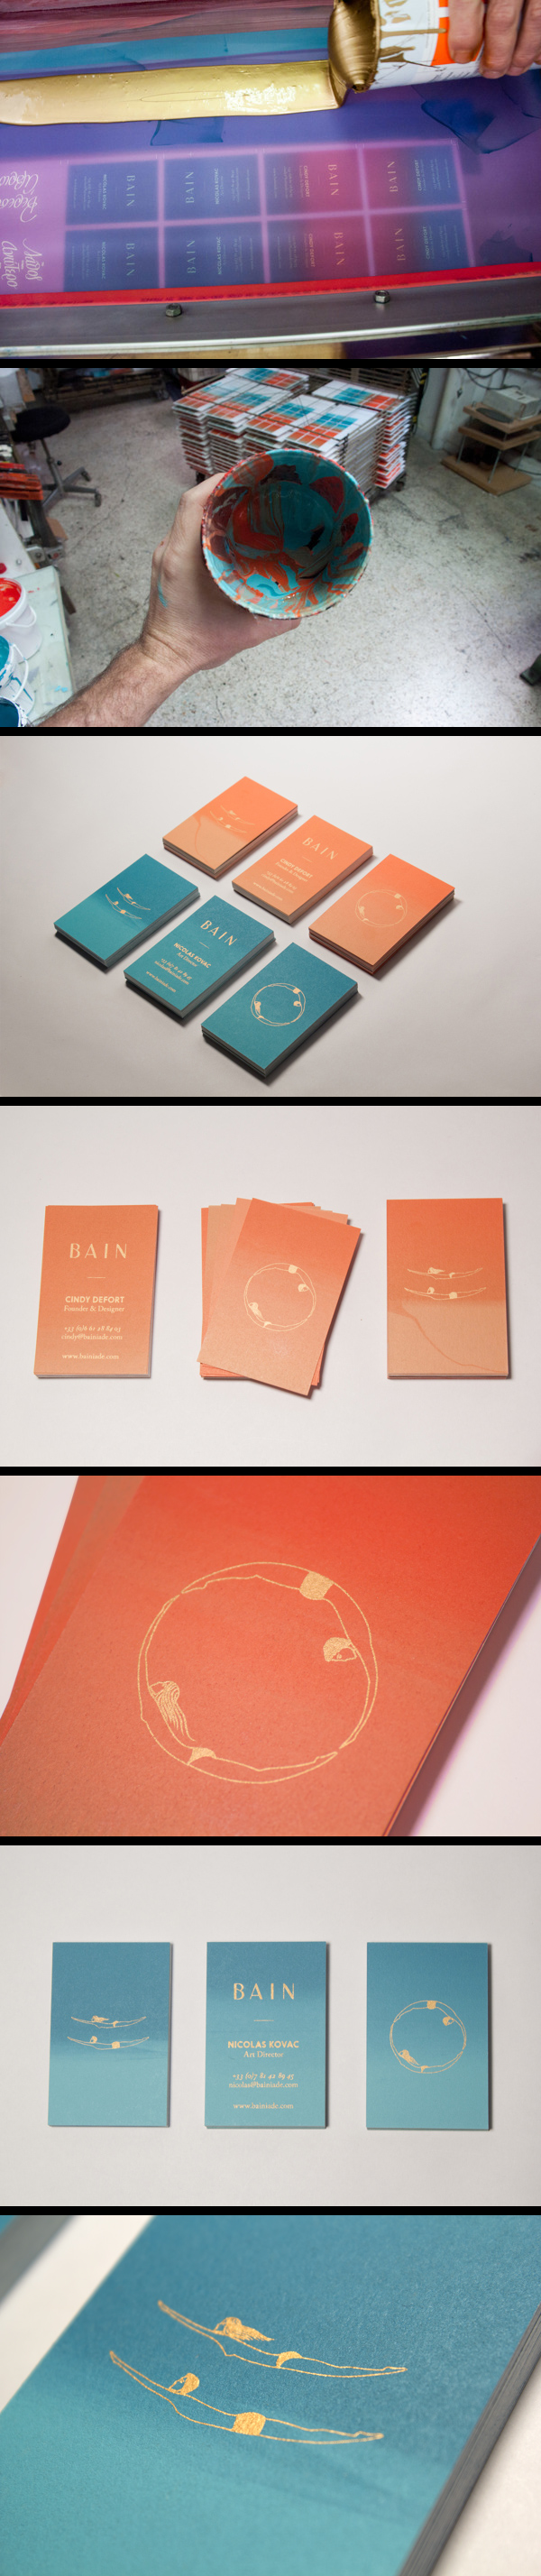 Nicola Kovac, Cindy Defort, tind | BAIN Silk Printed Business Cards